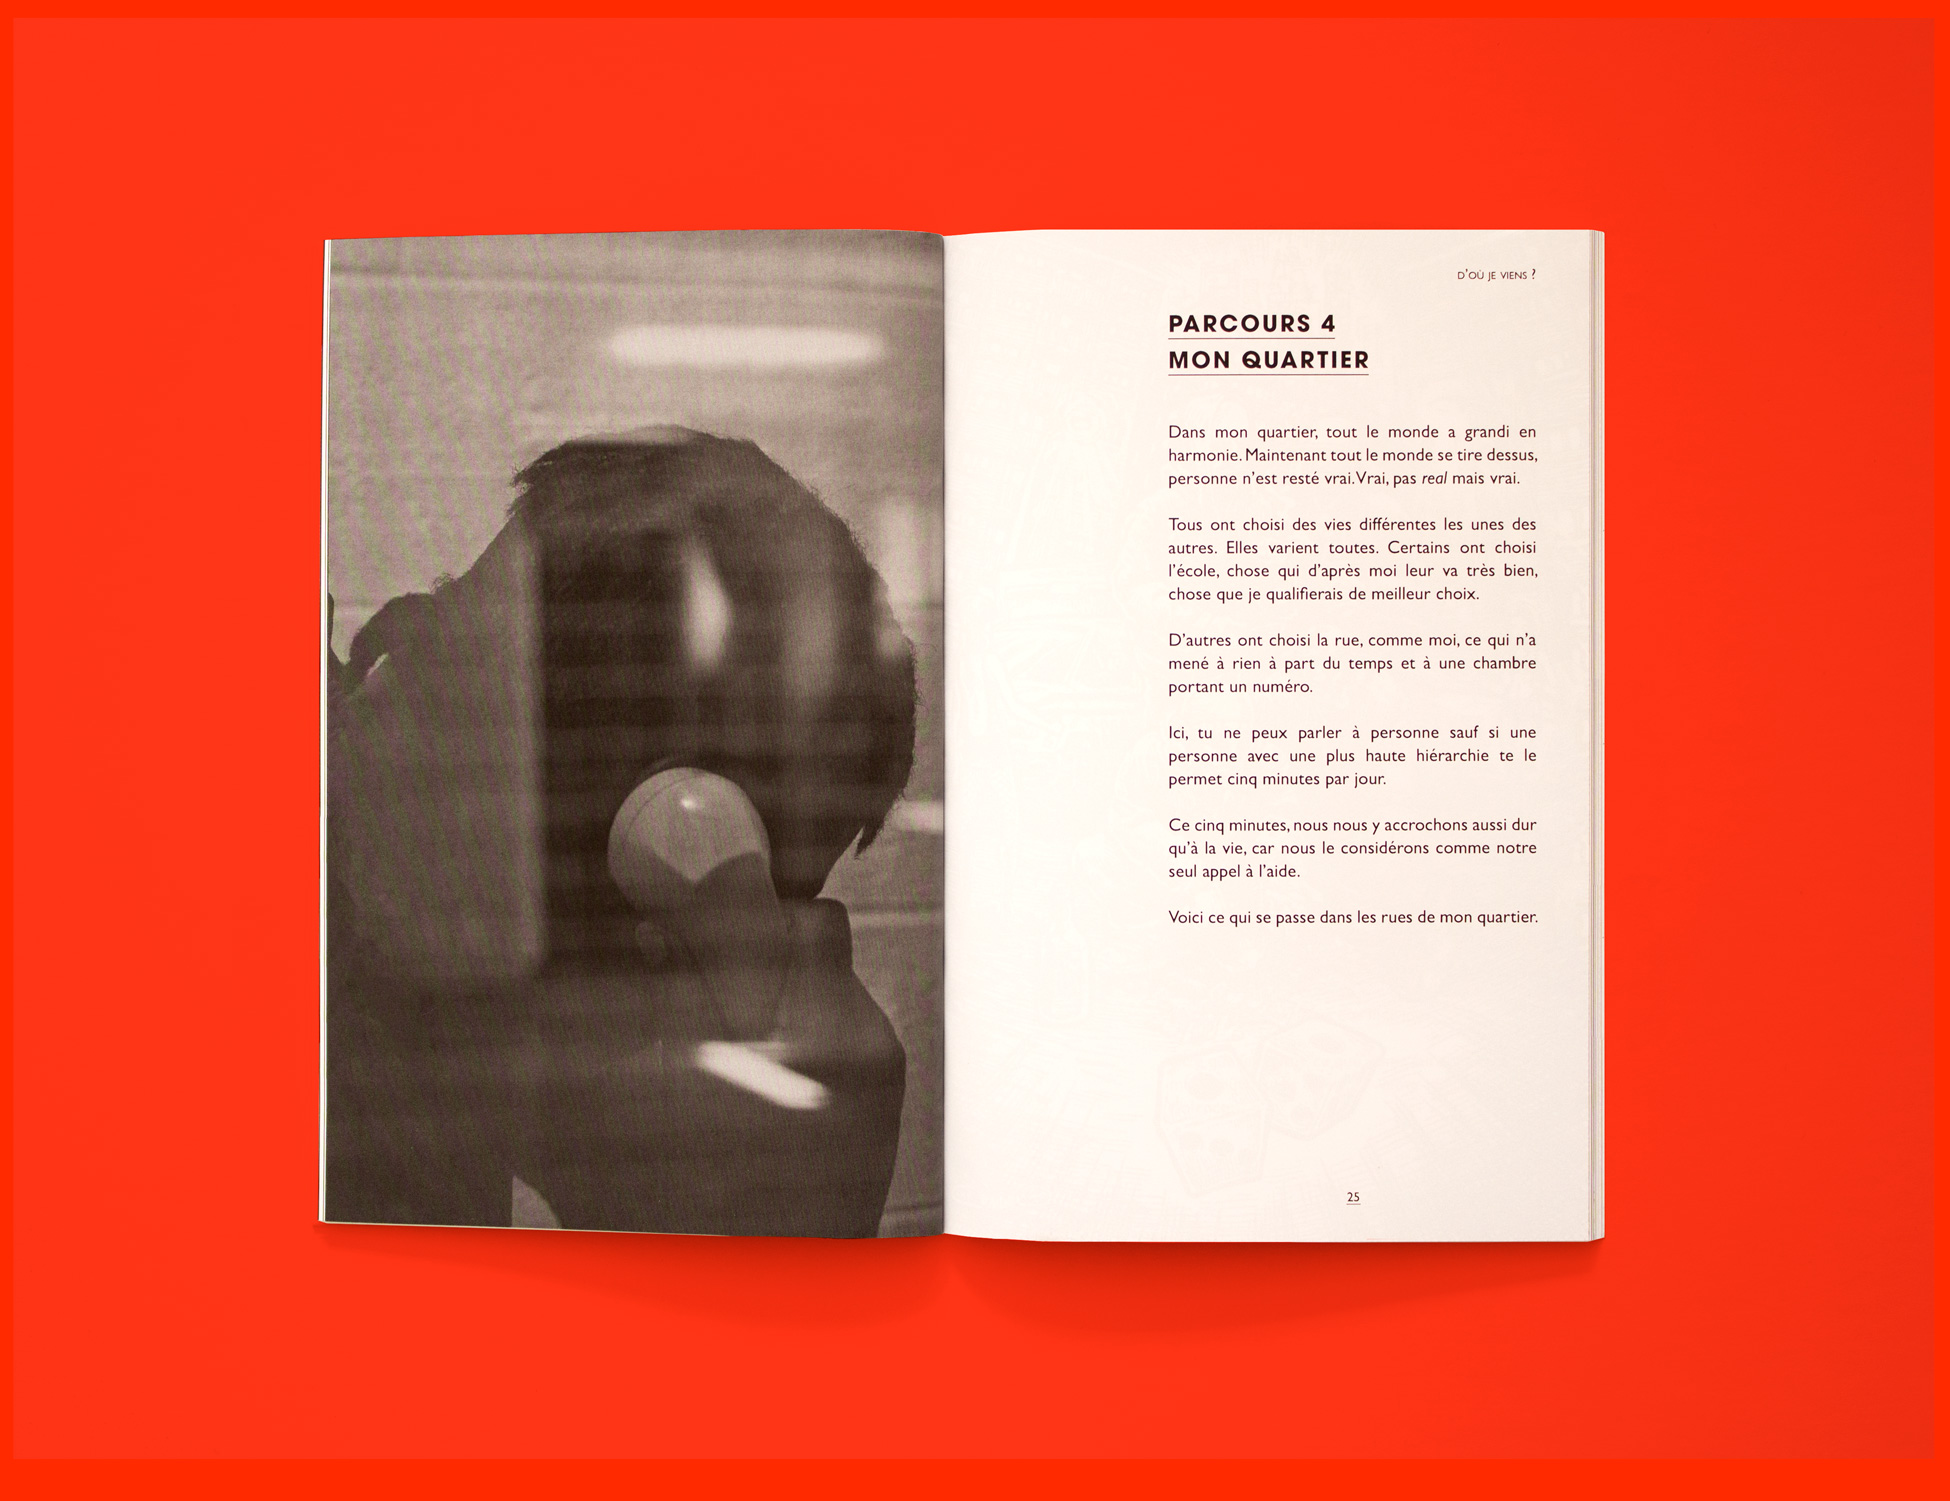 Spread from Parcous: Chacun son temps. The left page is a photograph of a young person talking on a phone. The photo is taken from behind a glass. The right page is a short prose text written by youth living in Cité des Prairies.